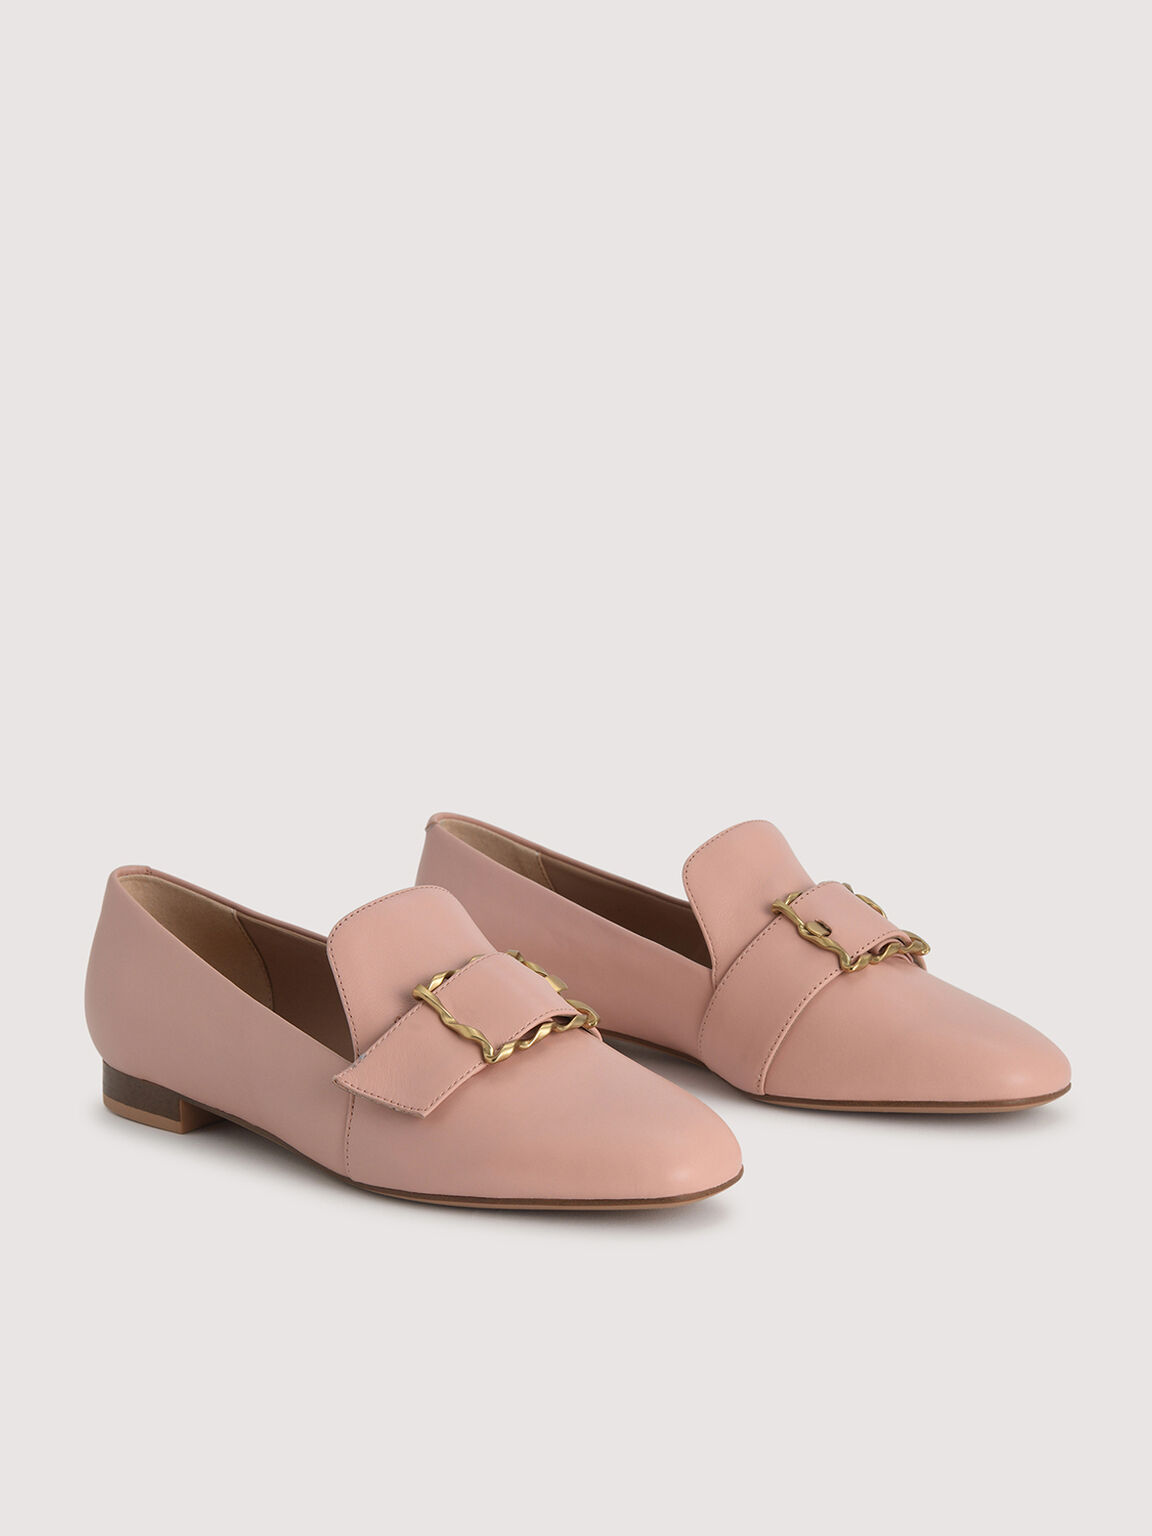 Leather Buckled Loafers, Nude, hi-res